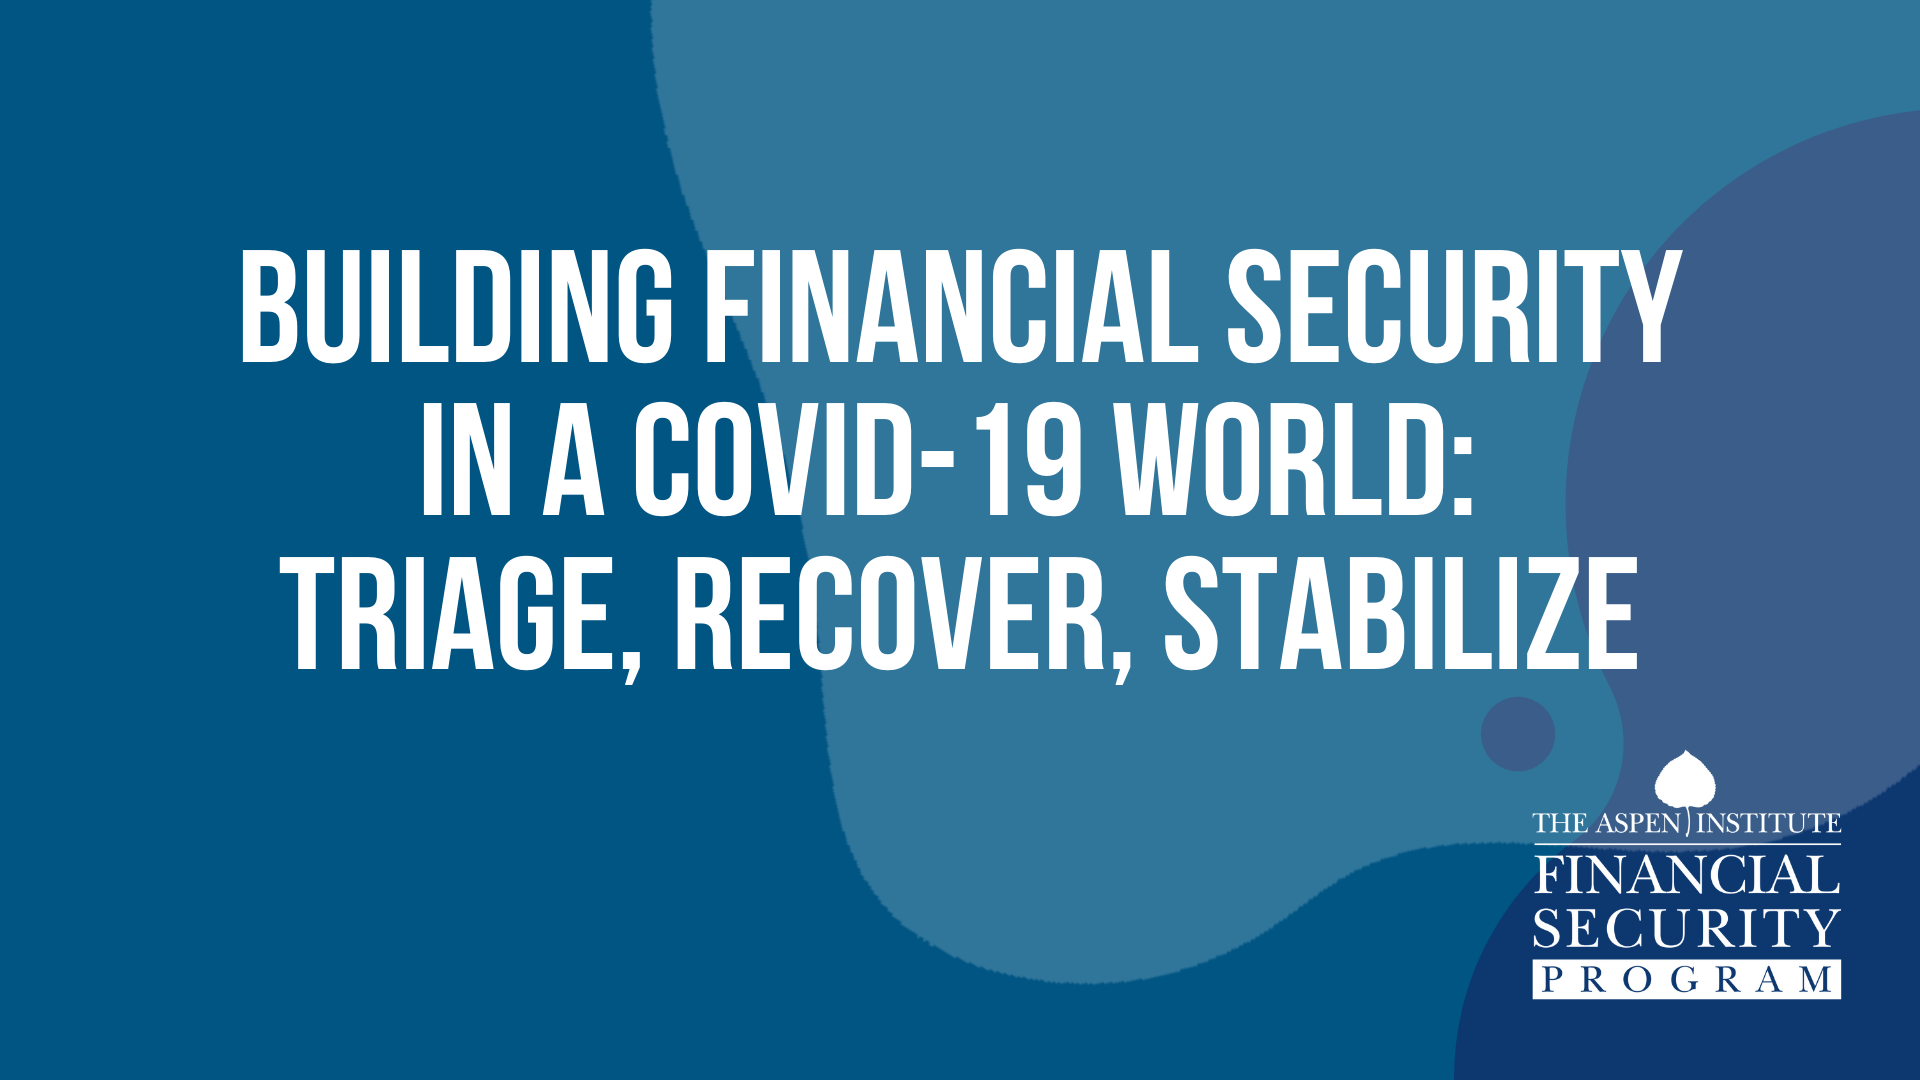 Building Financial Security in a COVID-19 World: Triage, Recover, Stabilize